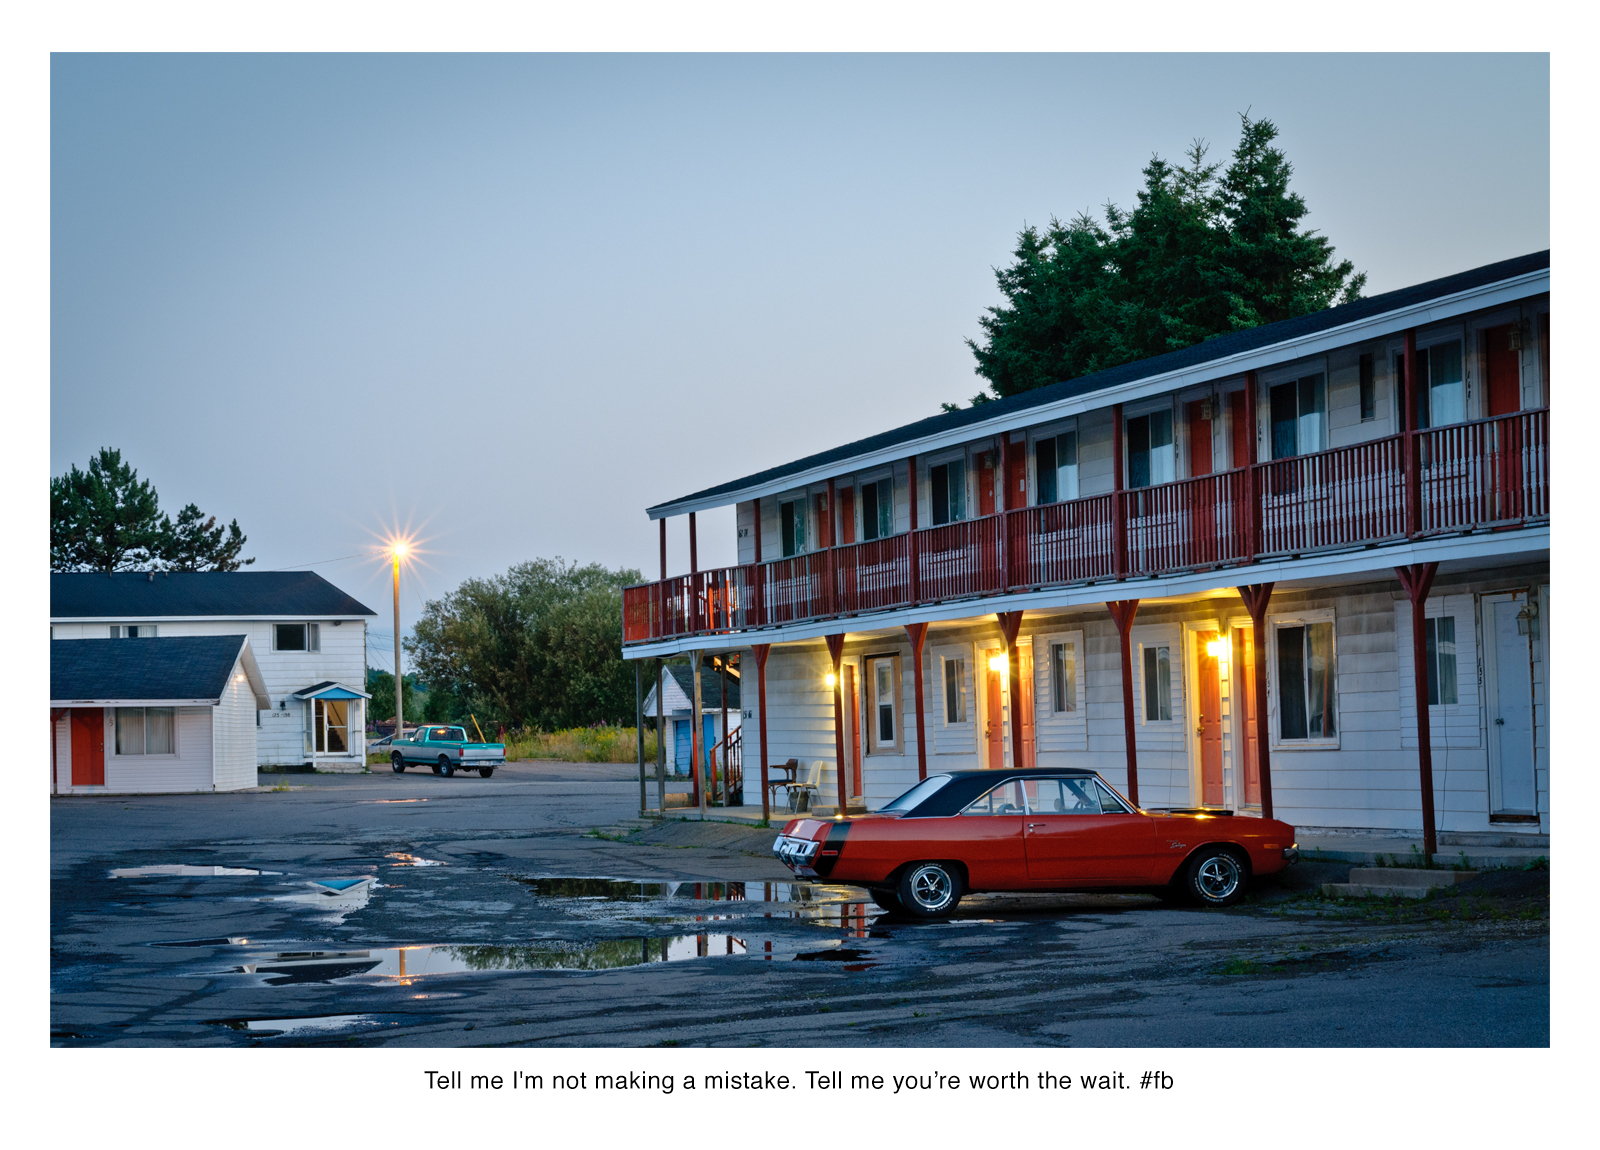 motel at dusk, red car in foreground